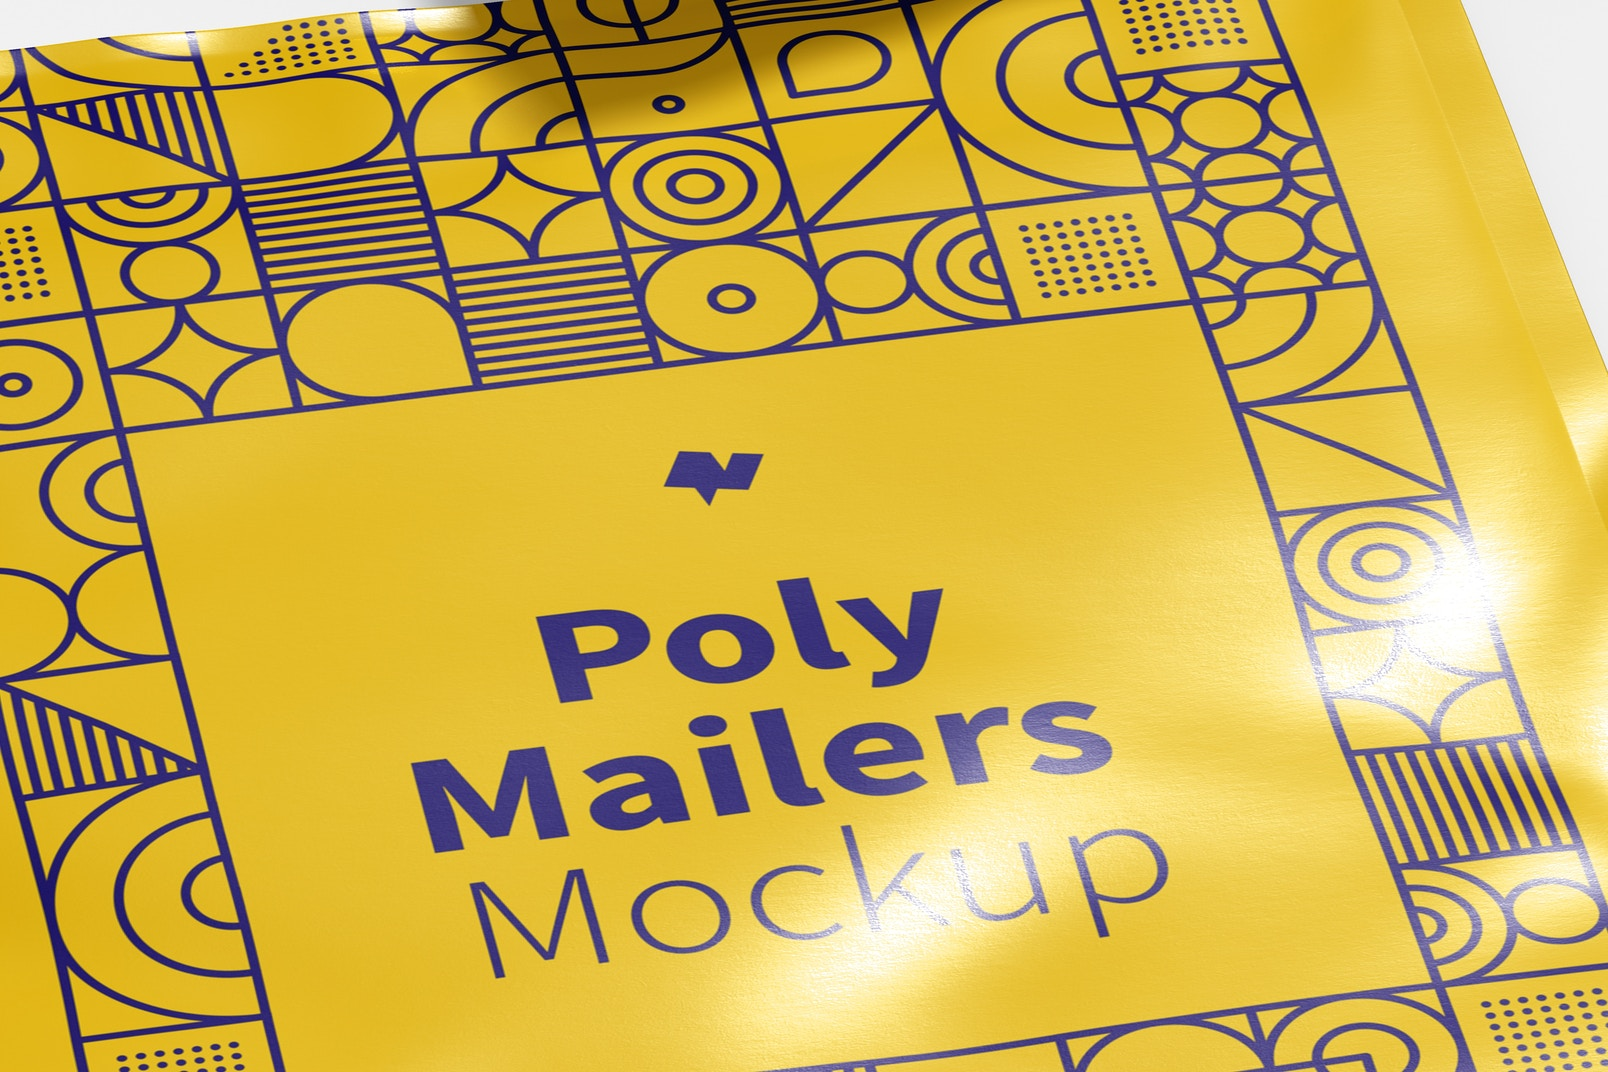 Poly Mailers Mockup, Close Up